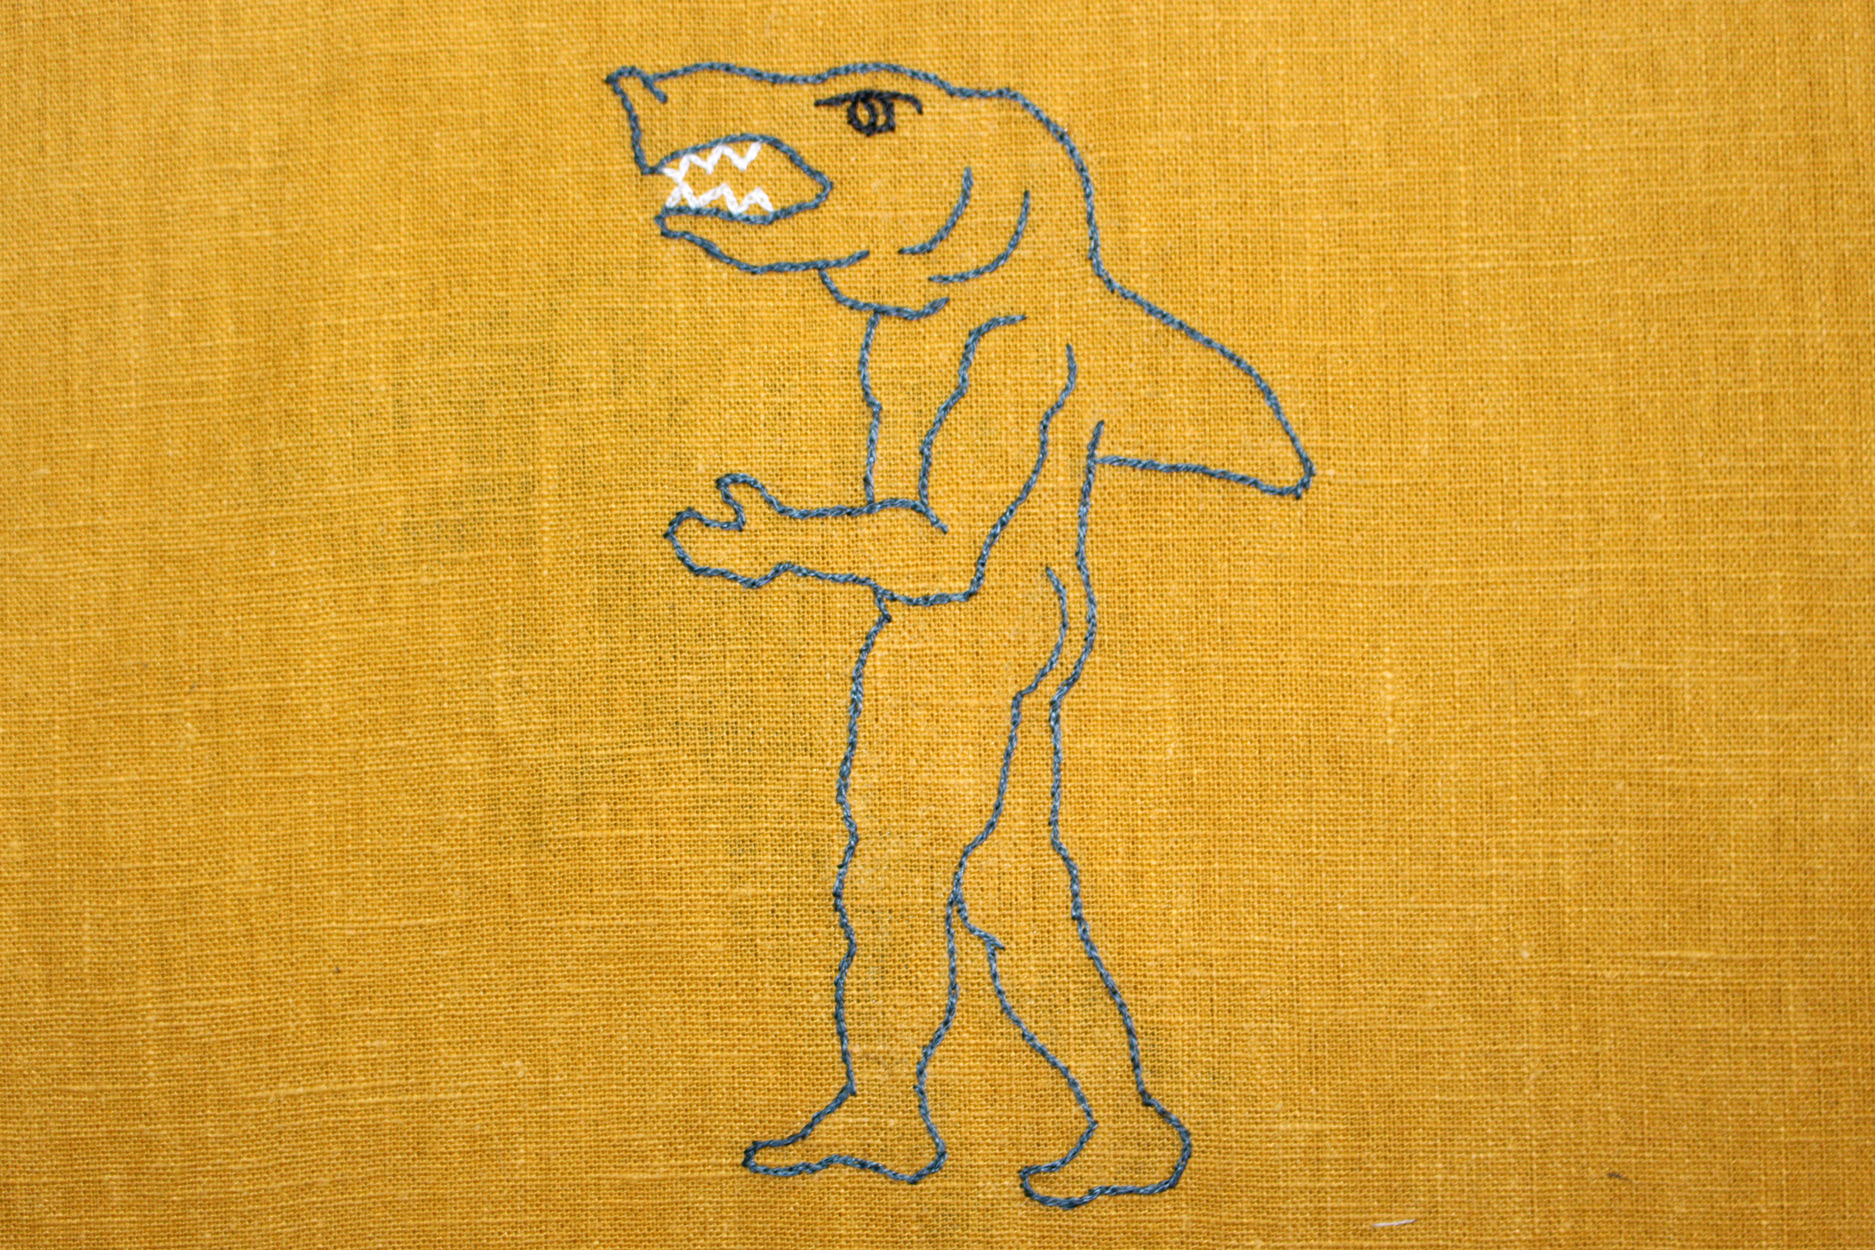 Embroidery of a Shark Man